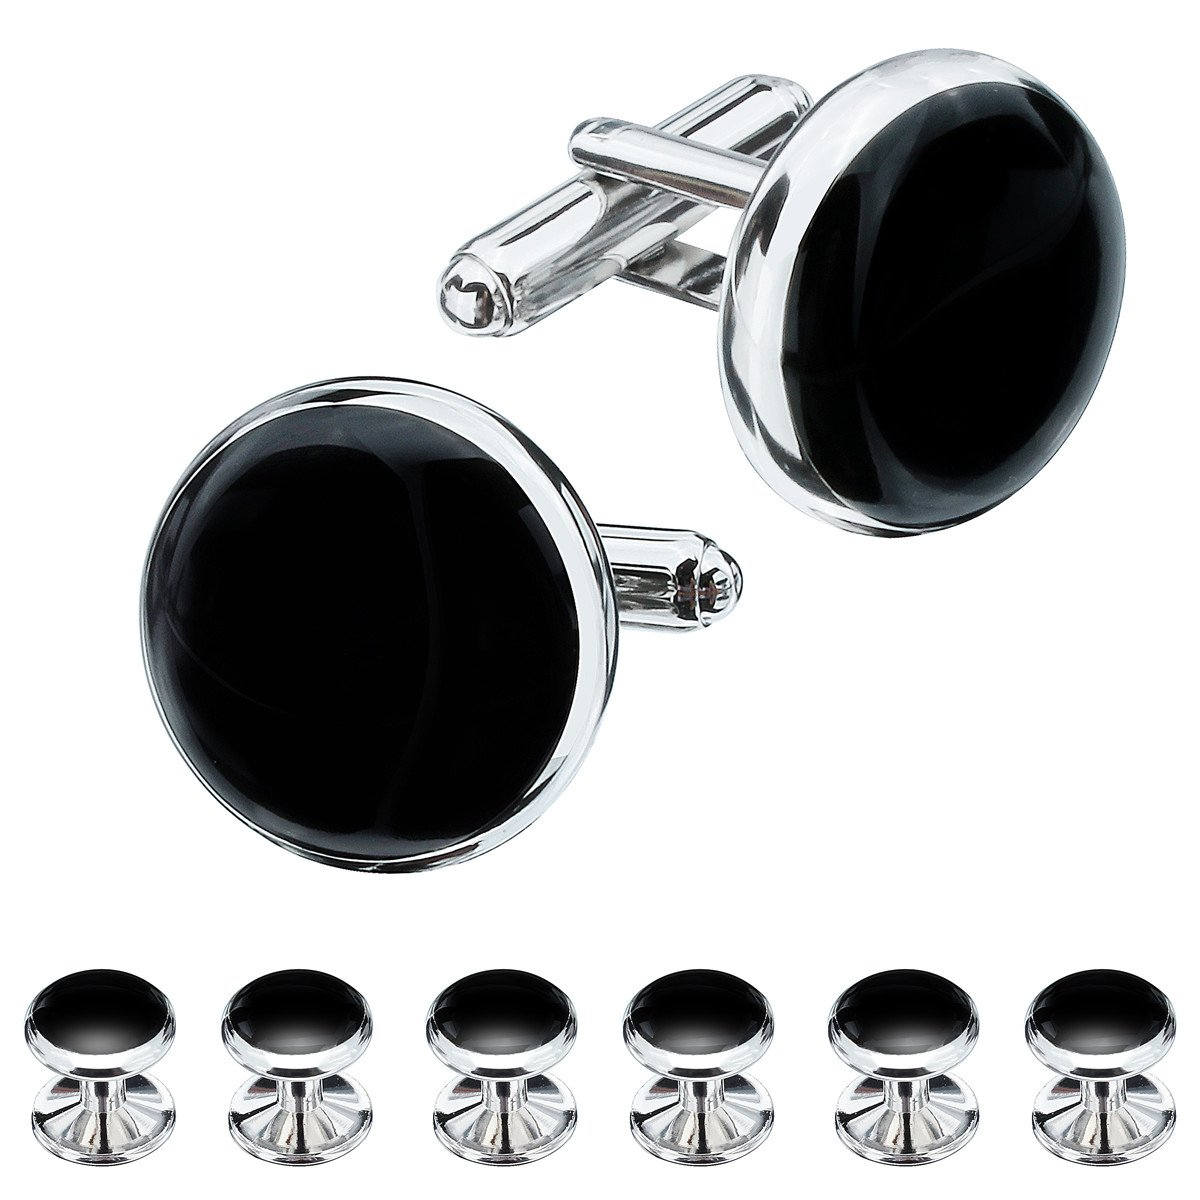 HAWSON Mens Black Cufflinks and Studs Set for Tuxedo Dress Shirt - Wedding Business Party Accessories